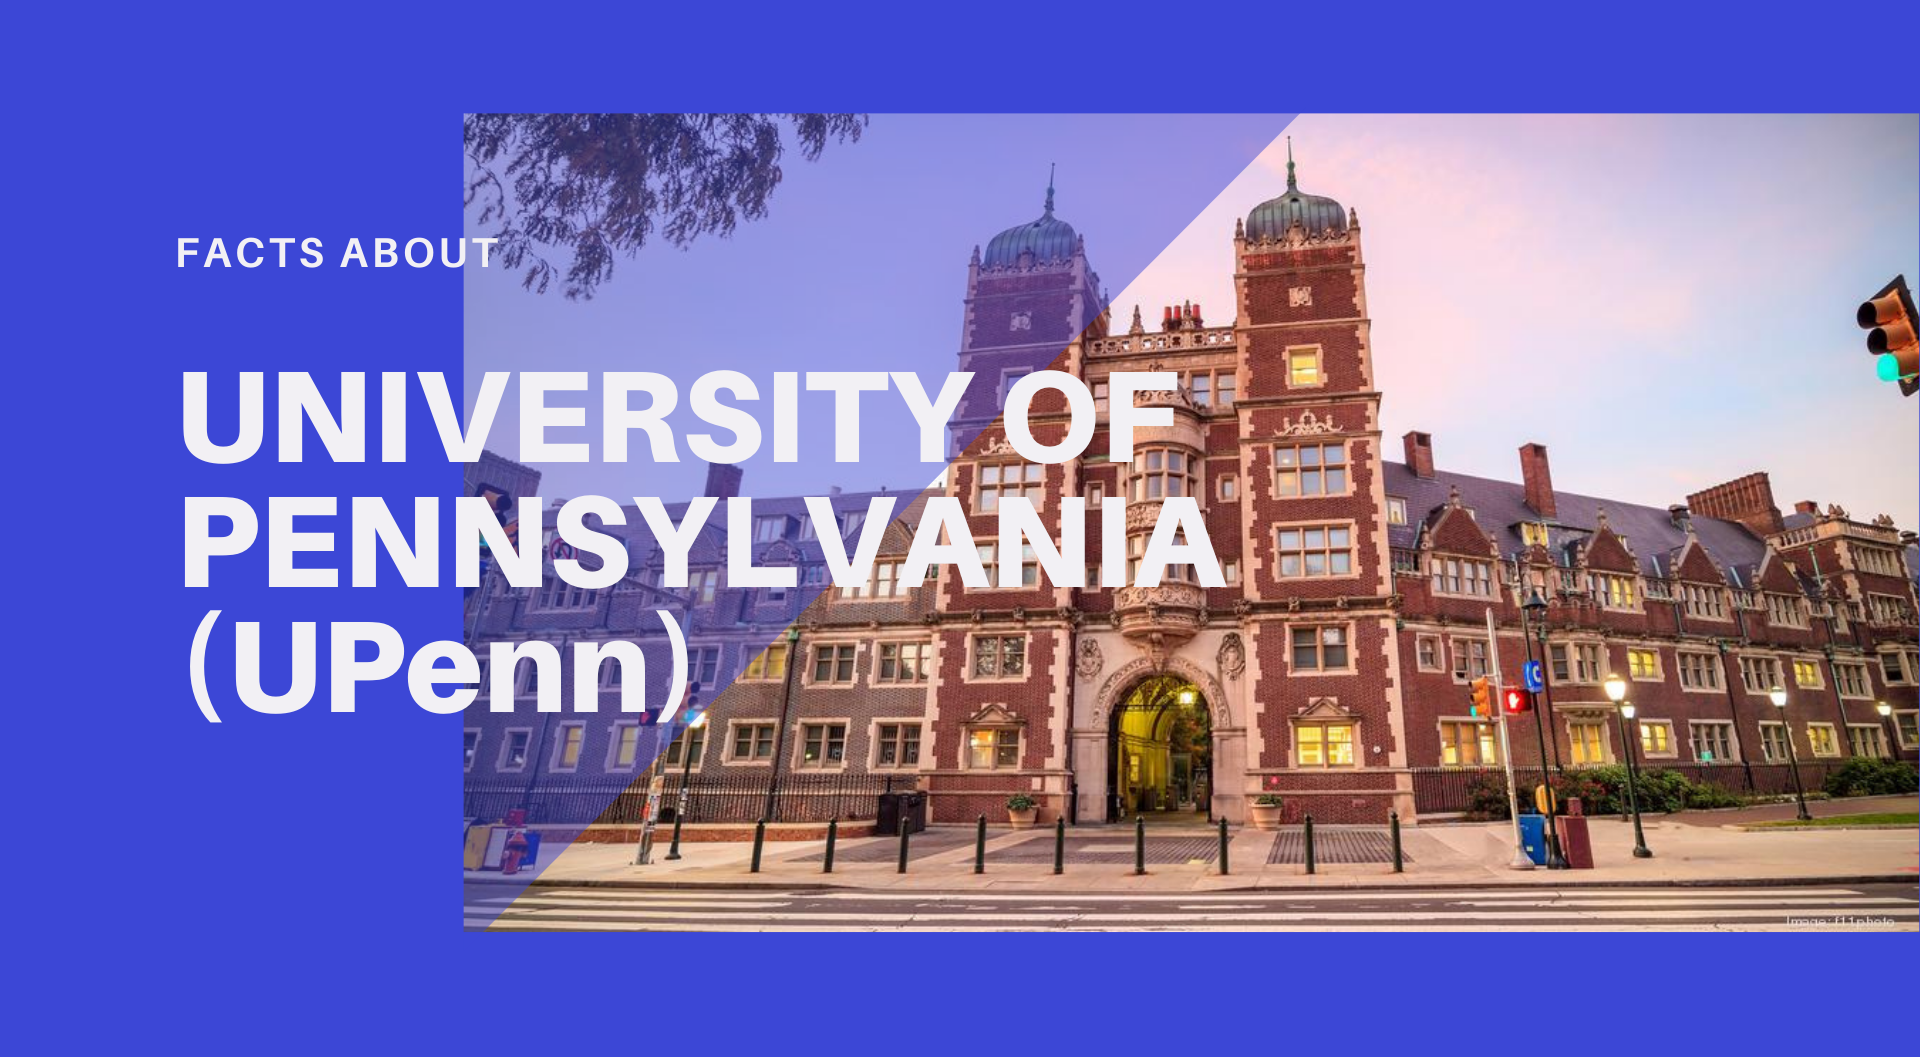 Facts about University of Pennsylvania (UPenn)